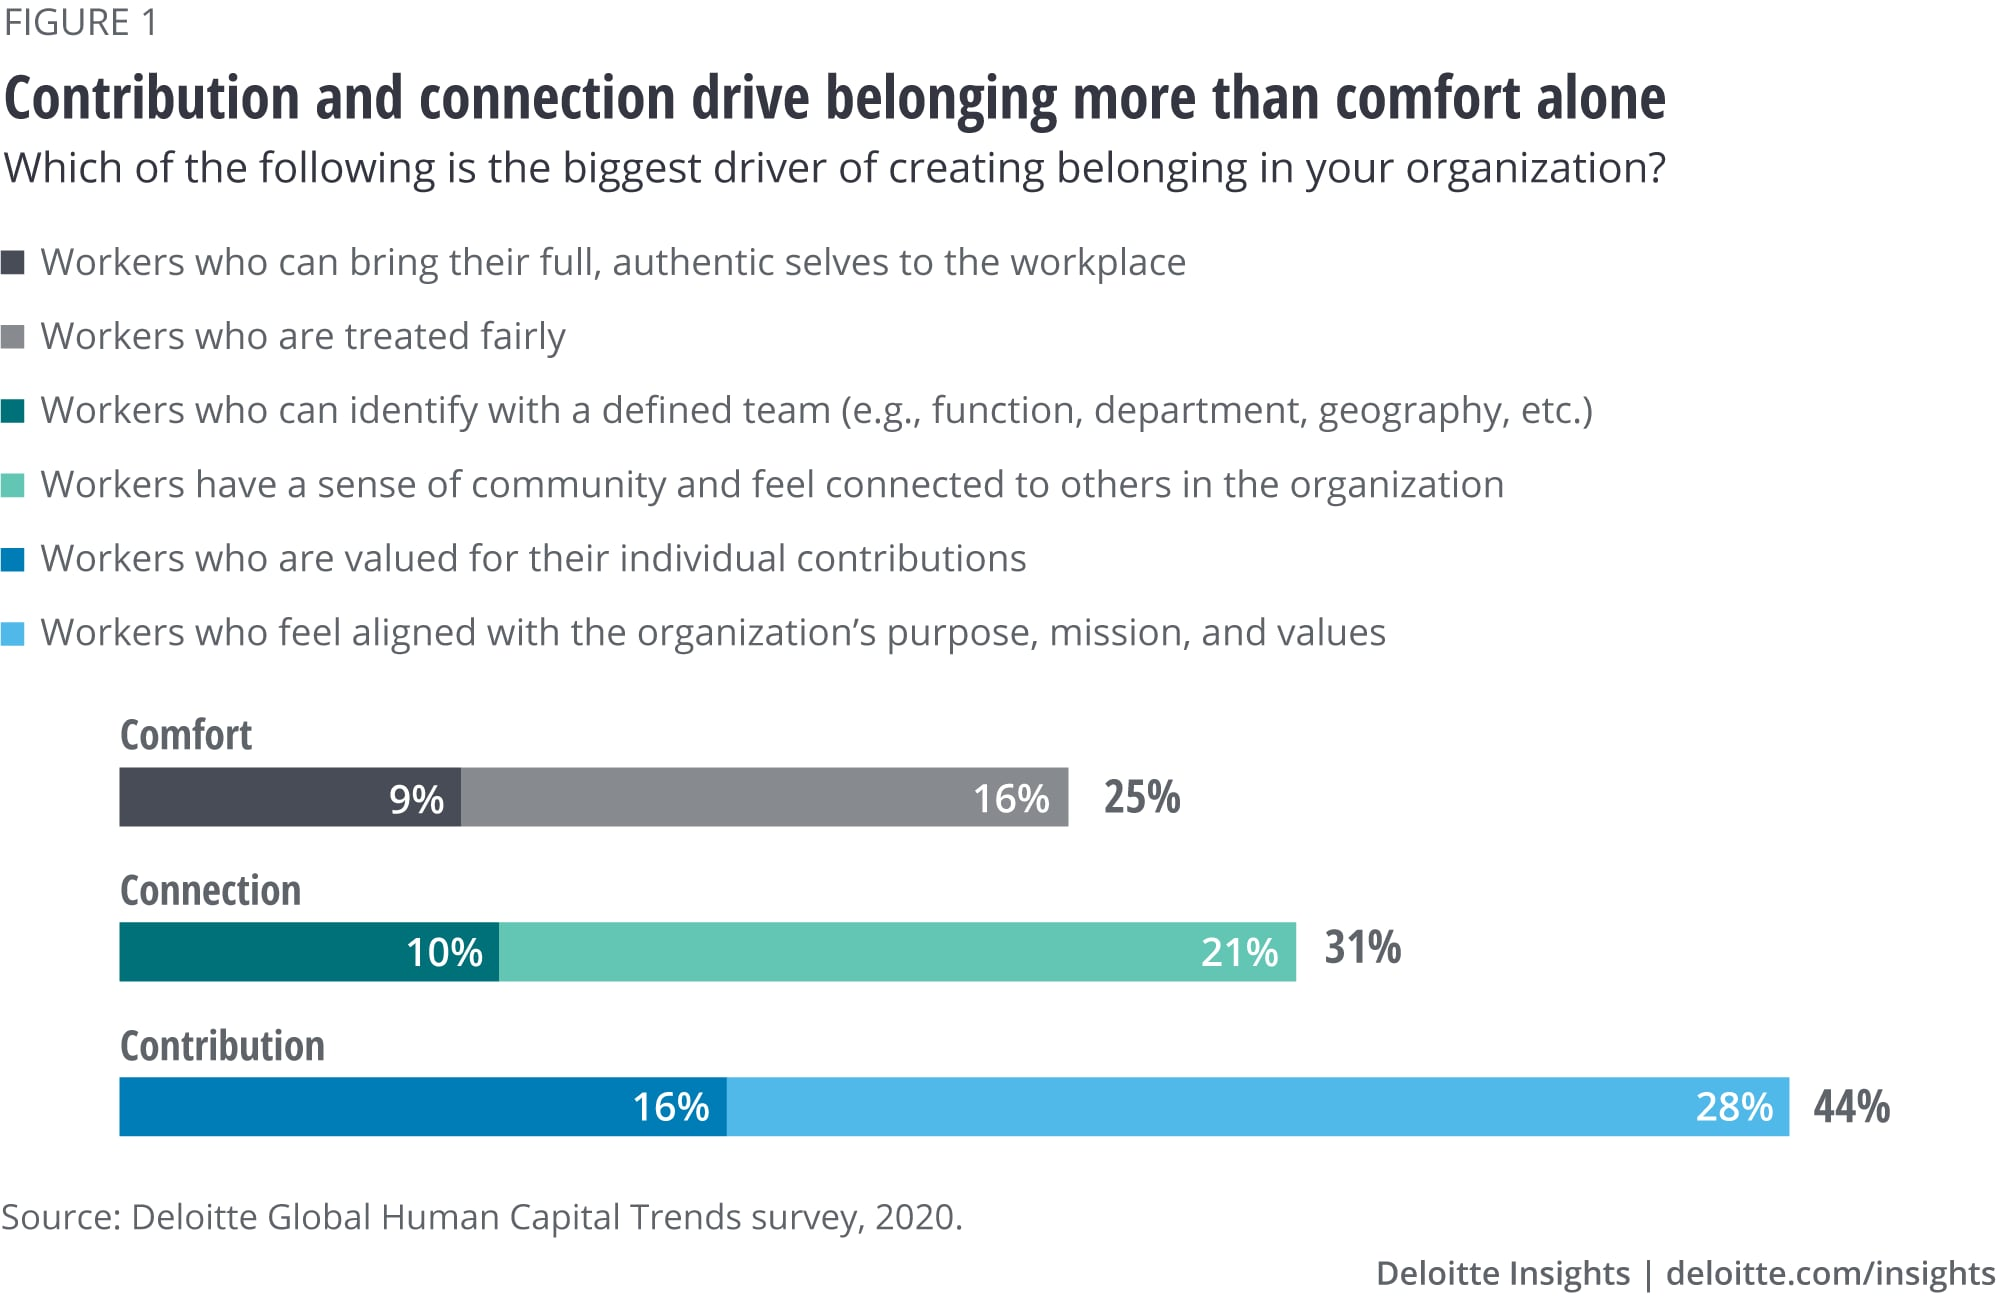 Contribution and connection drive belonging more than comfort alone